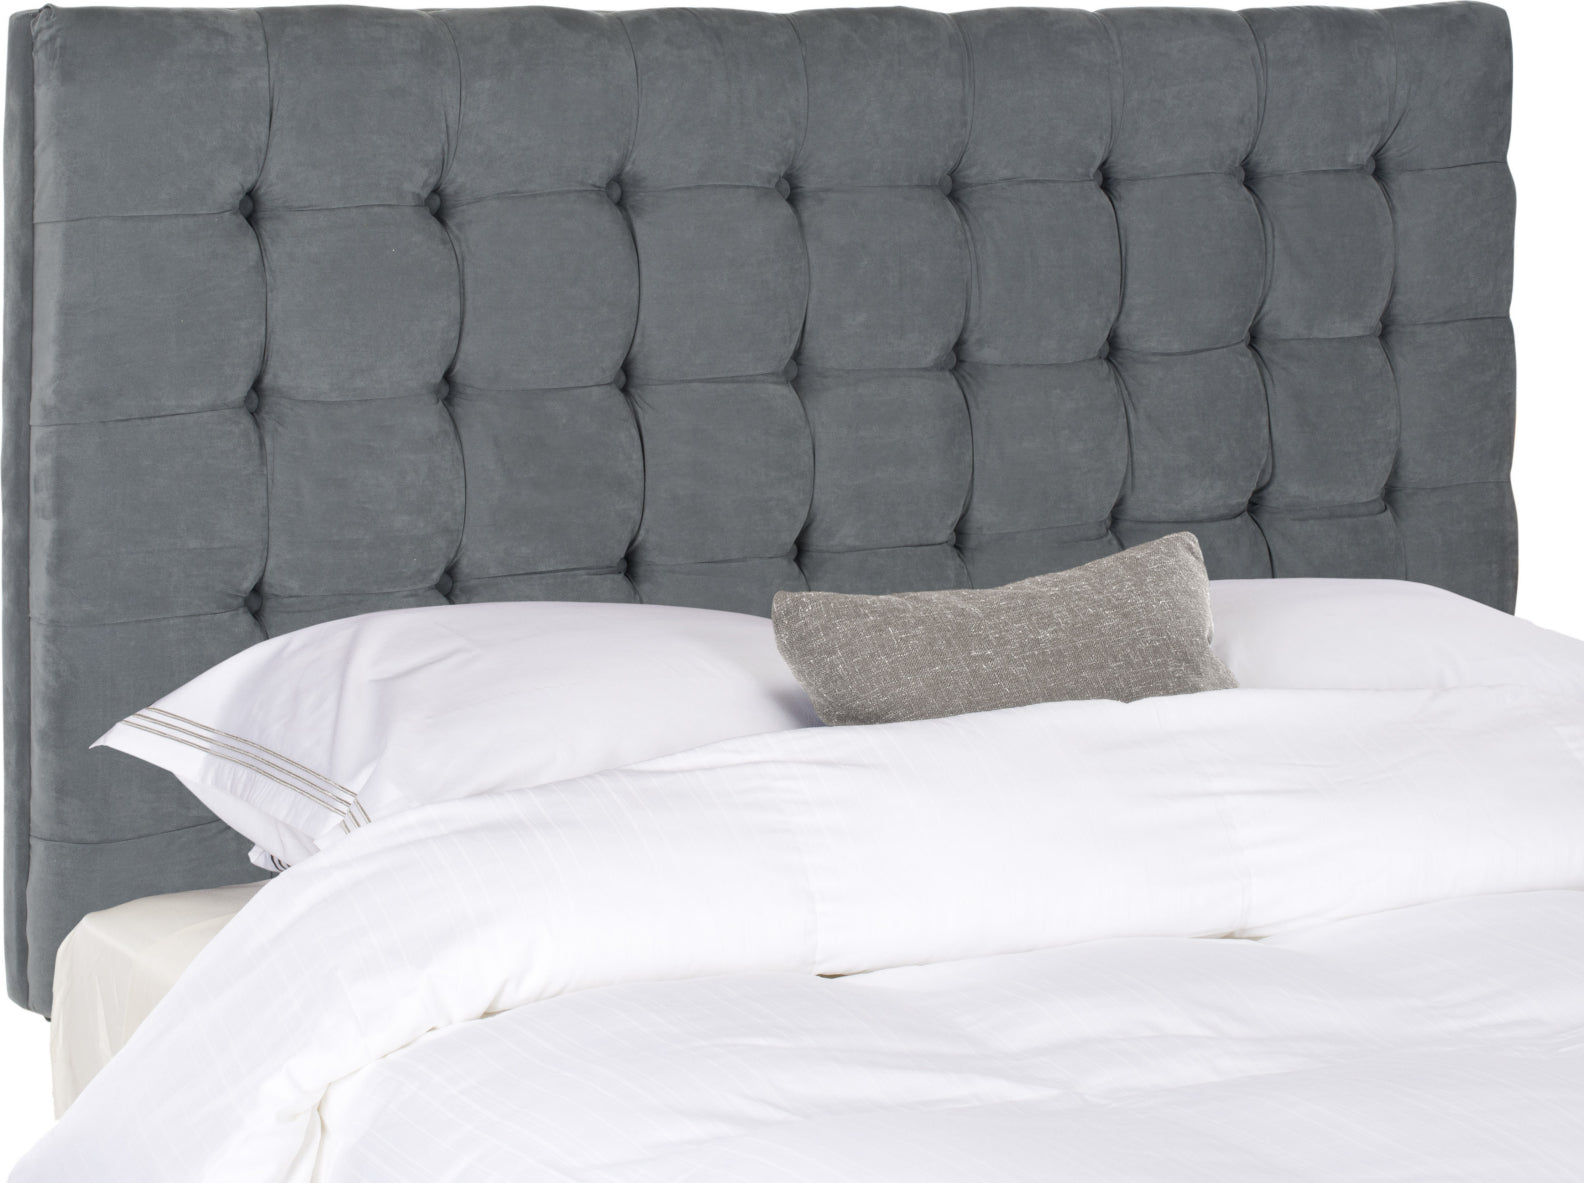 Safavieh Lamar Grey Tufted Headboard Bedding main image